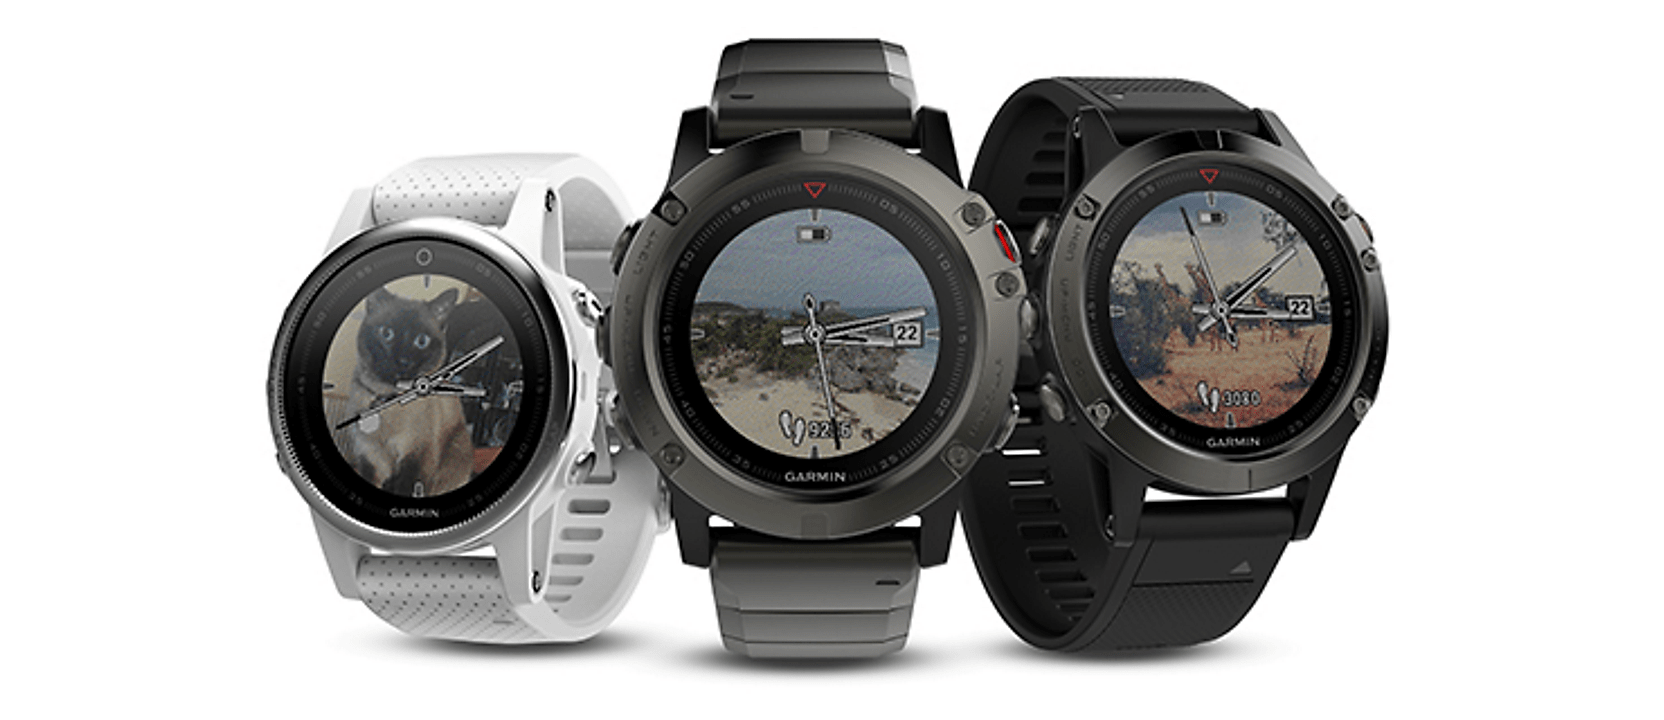 dynamics garmin best watch gps watches outdoor sport fenix review navigation running